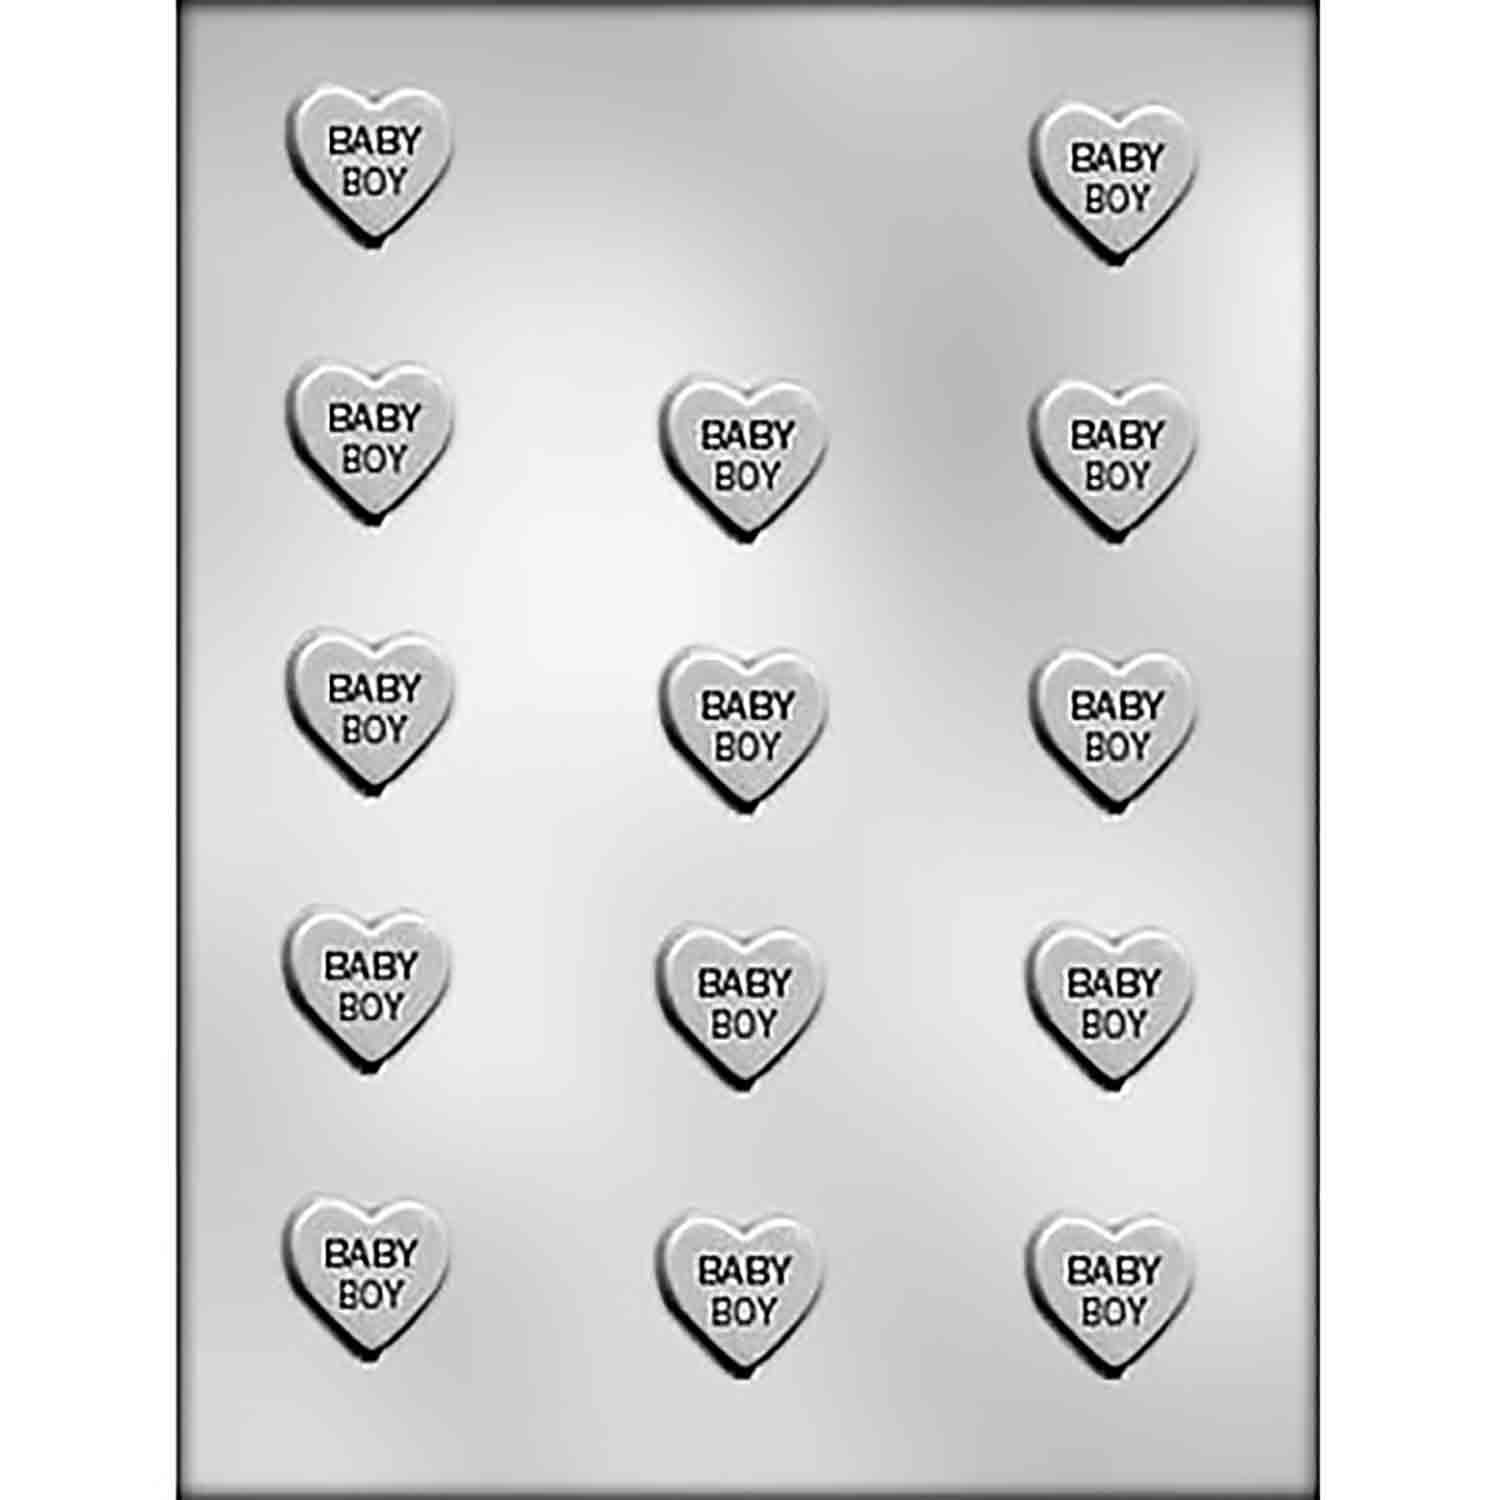 """BABY BOY"" on Heart Chocolate Candy Mold"